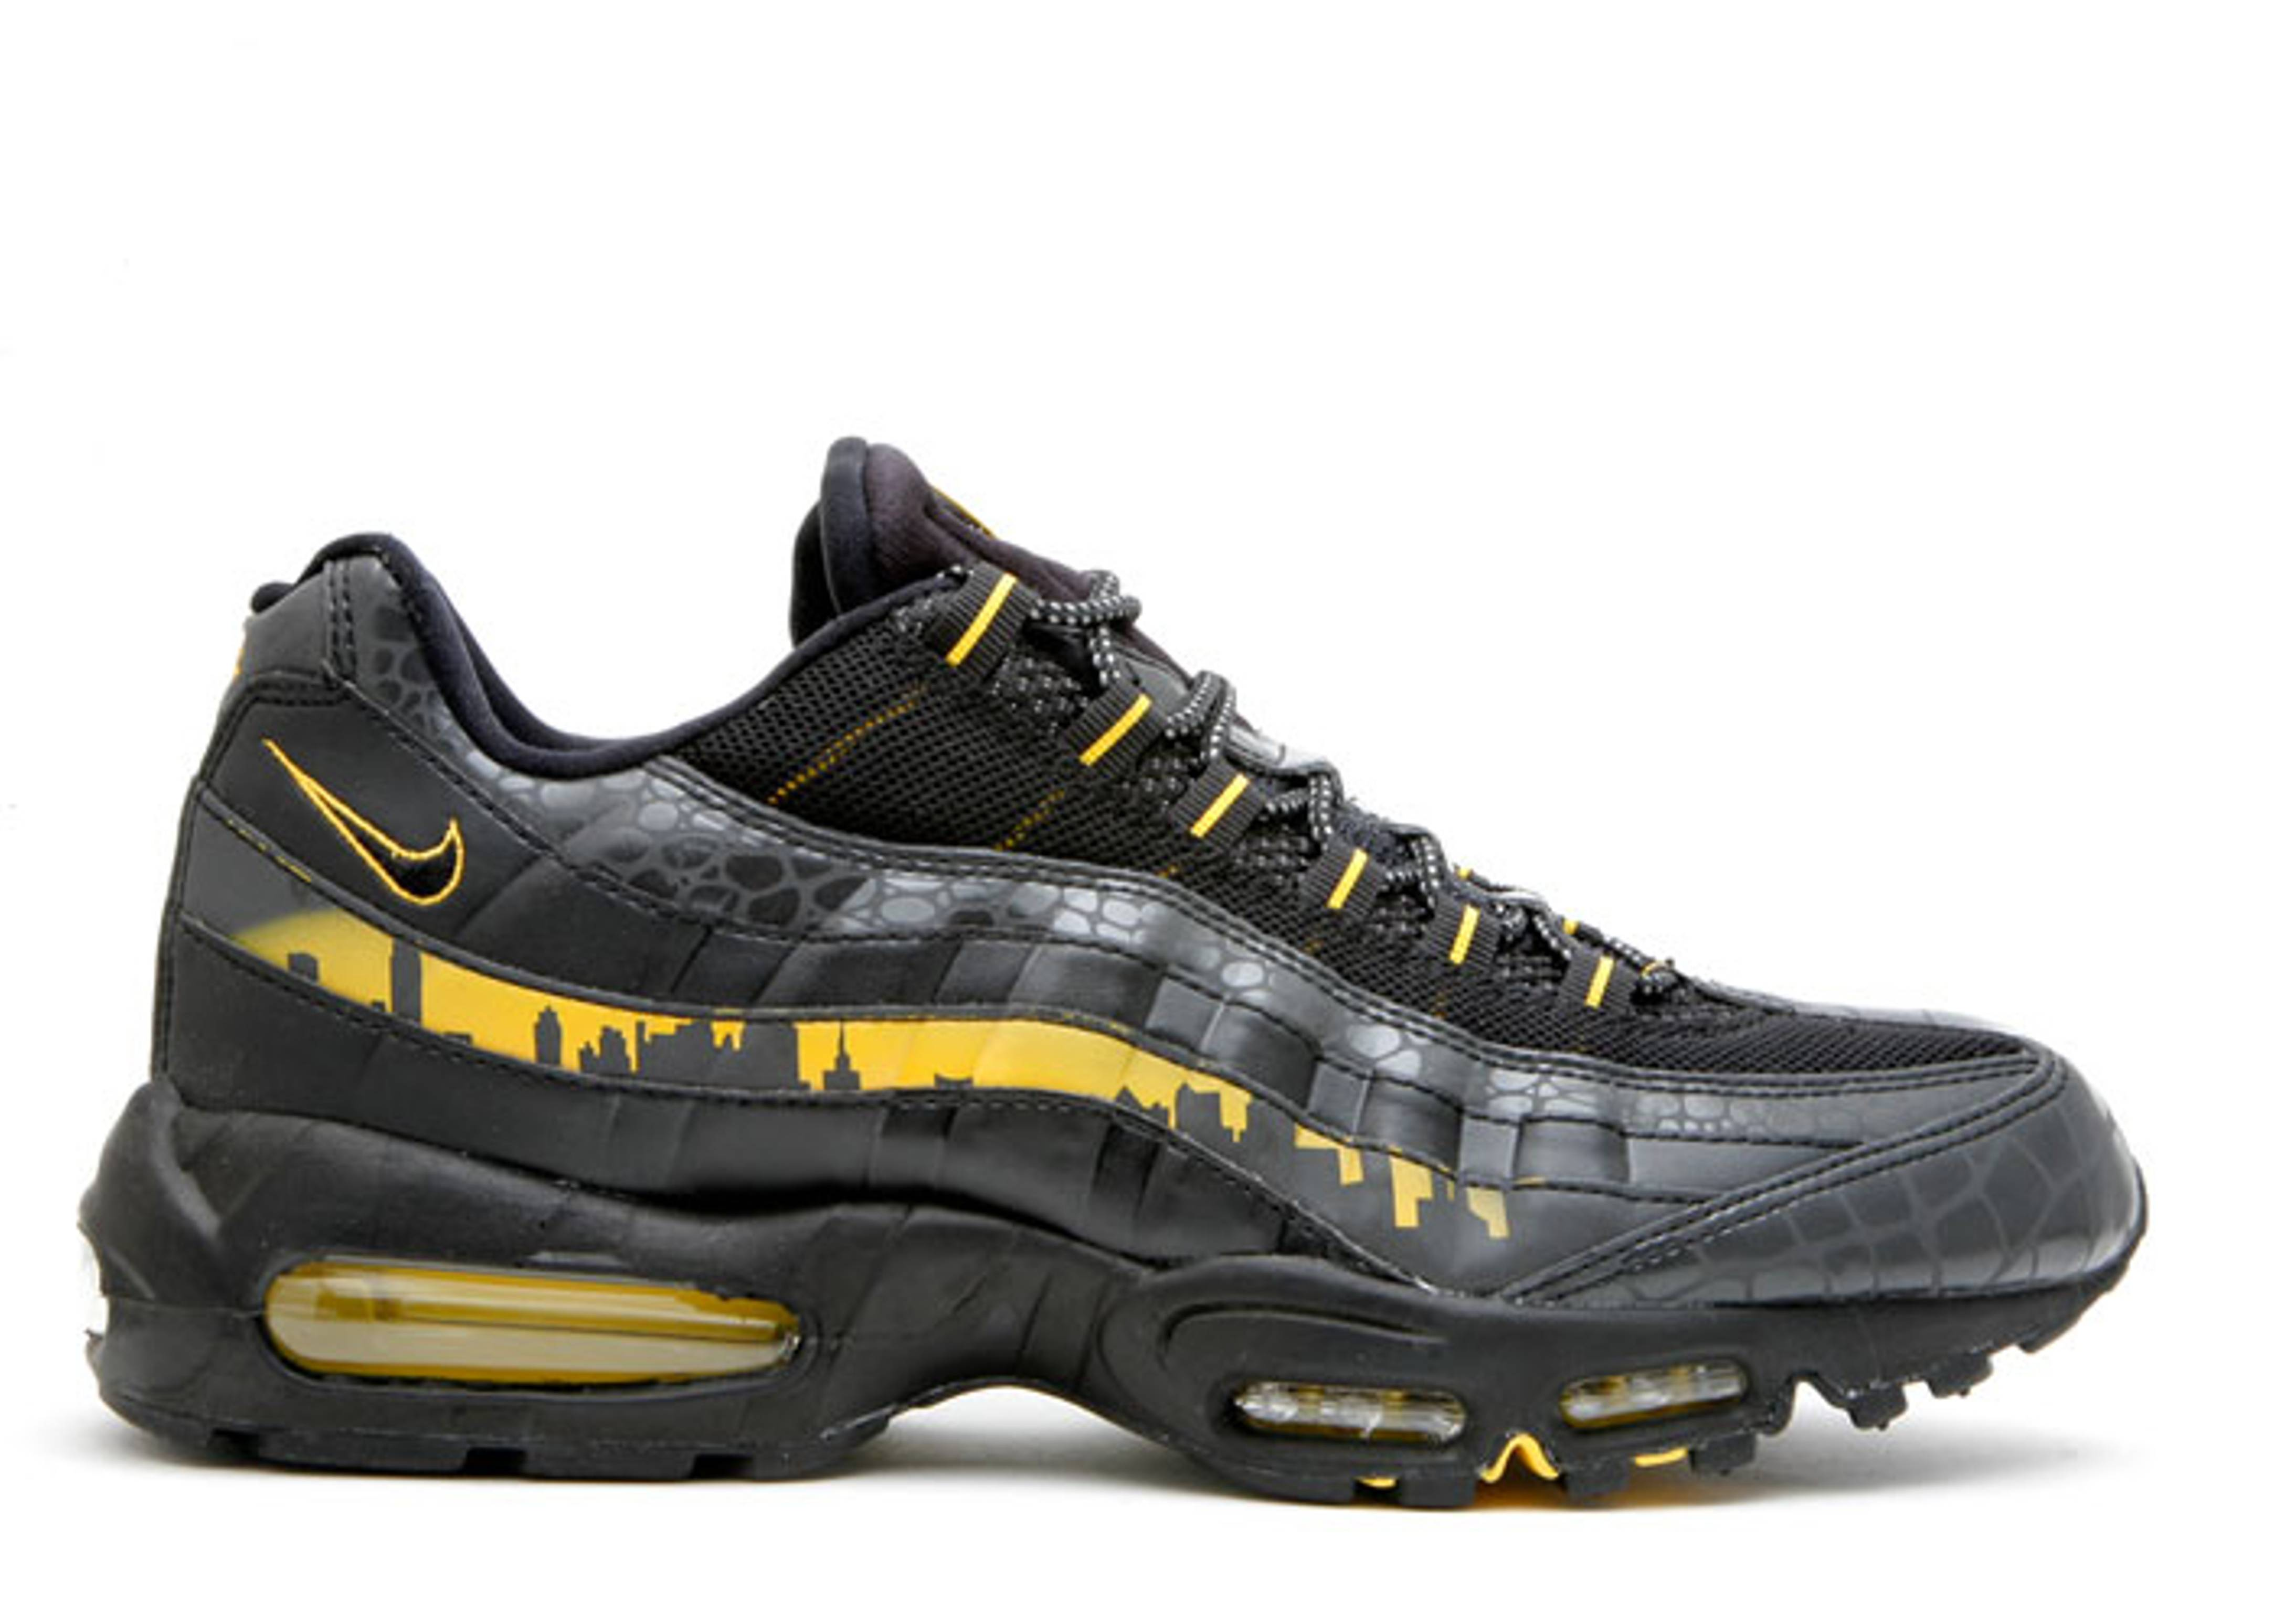 Air Max 95 Premium 'Nyc Blackout